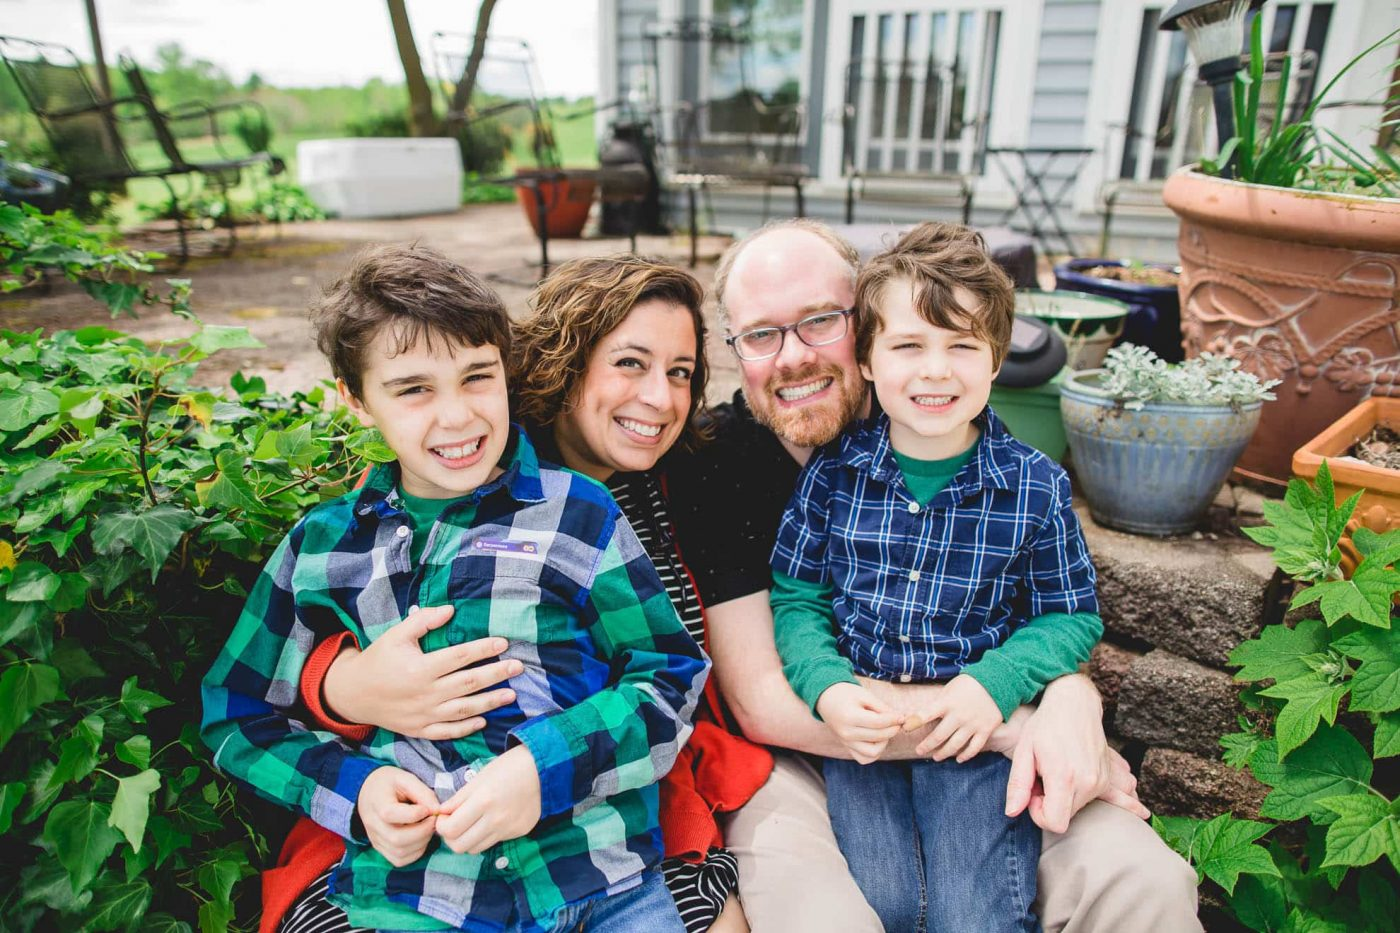 Family photo of Lucy Baber with her husband and two boys in their backyard Philadelphia